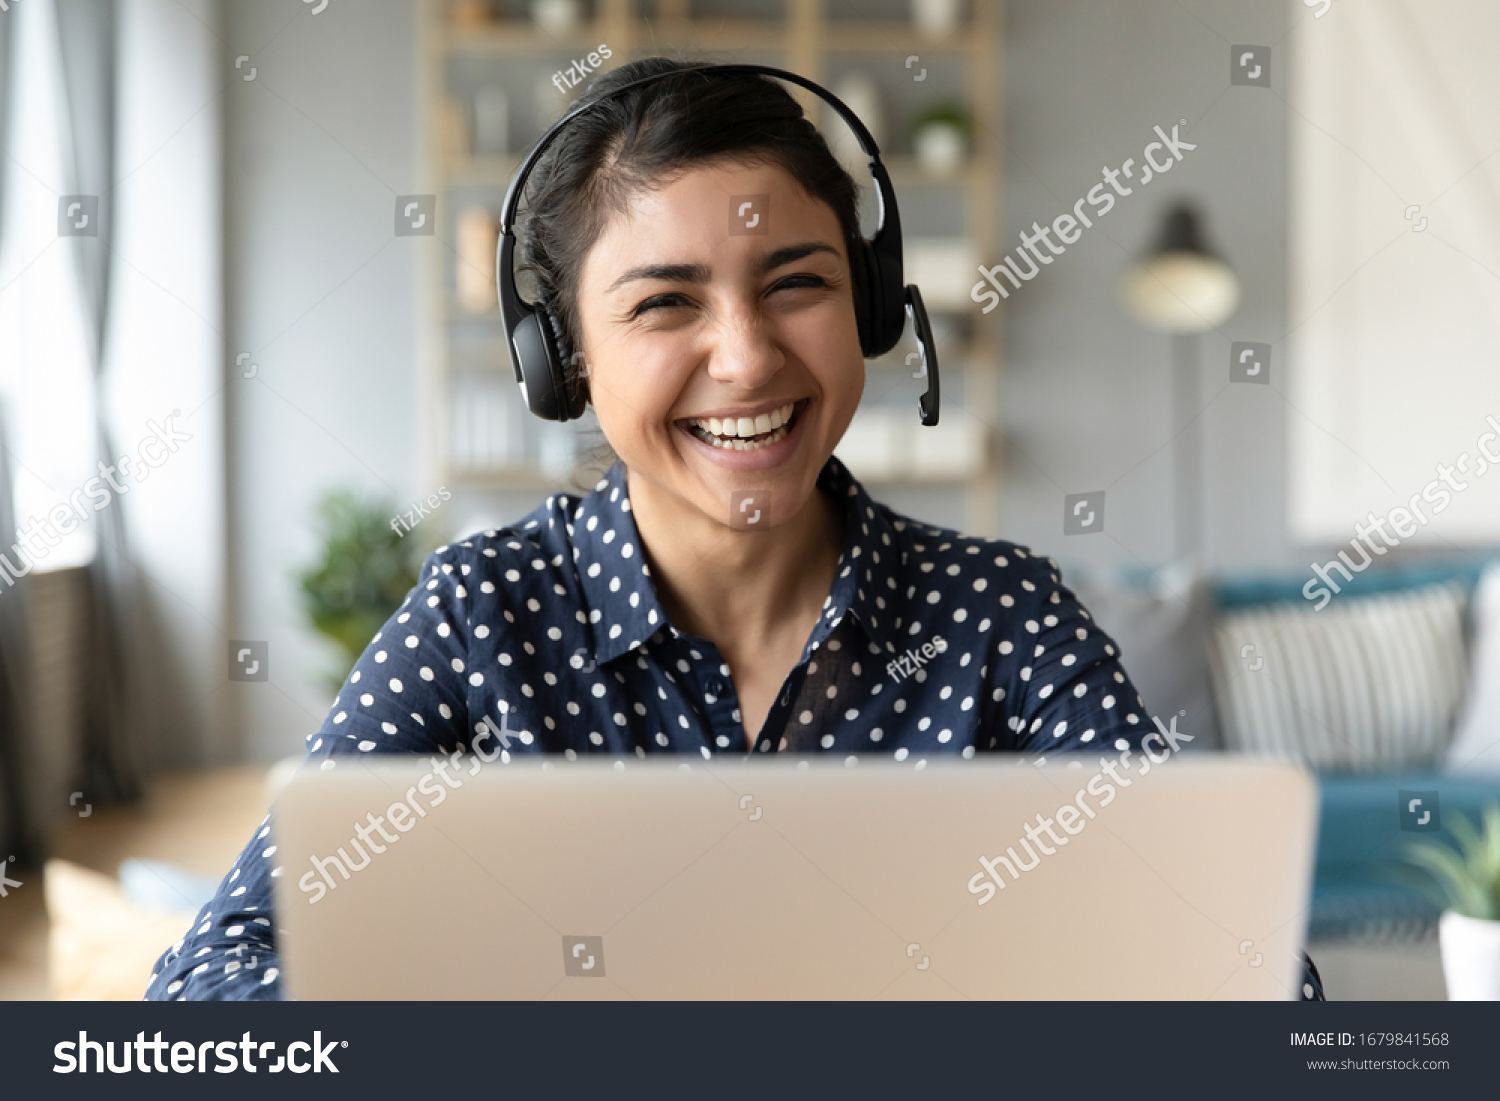 Head shot portrait smiling Indian woman wearing headphones posing for photo at workplace, happy excited female wearing headset looking at camera, sitting at desk with laptop, making video call #1679841568